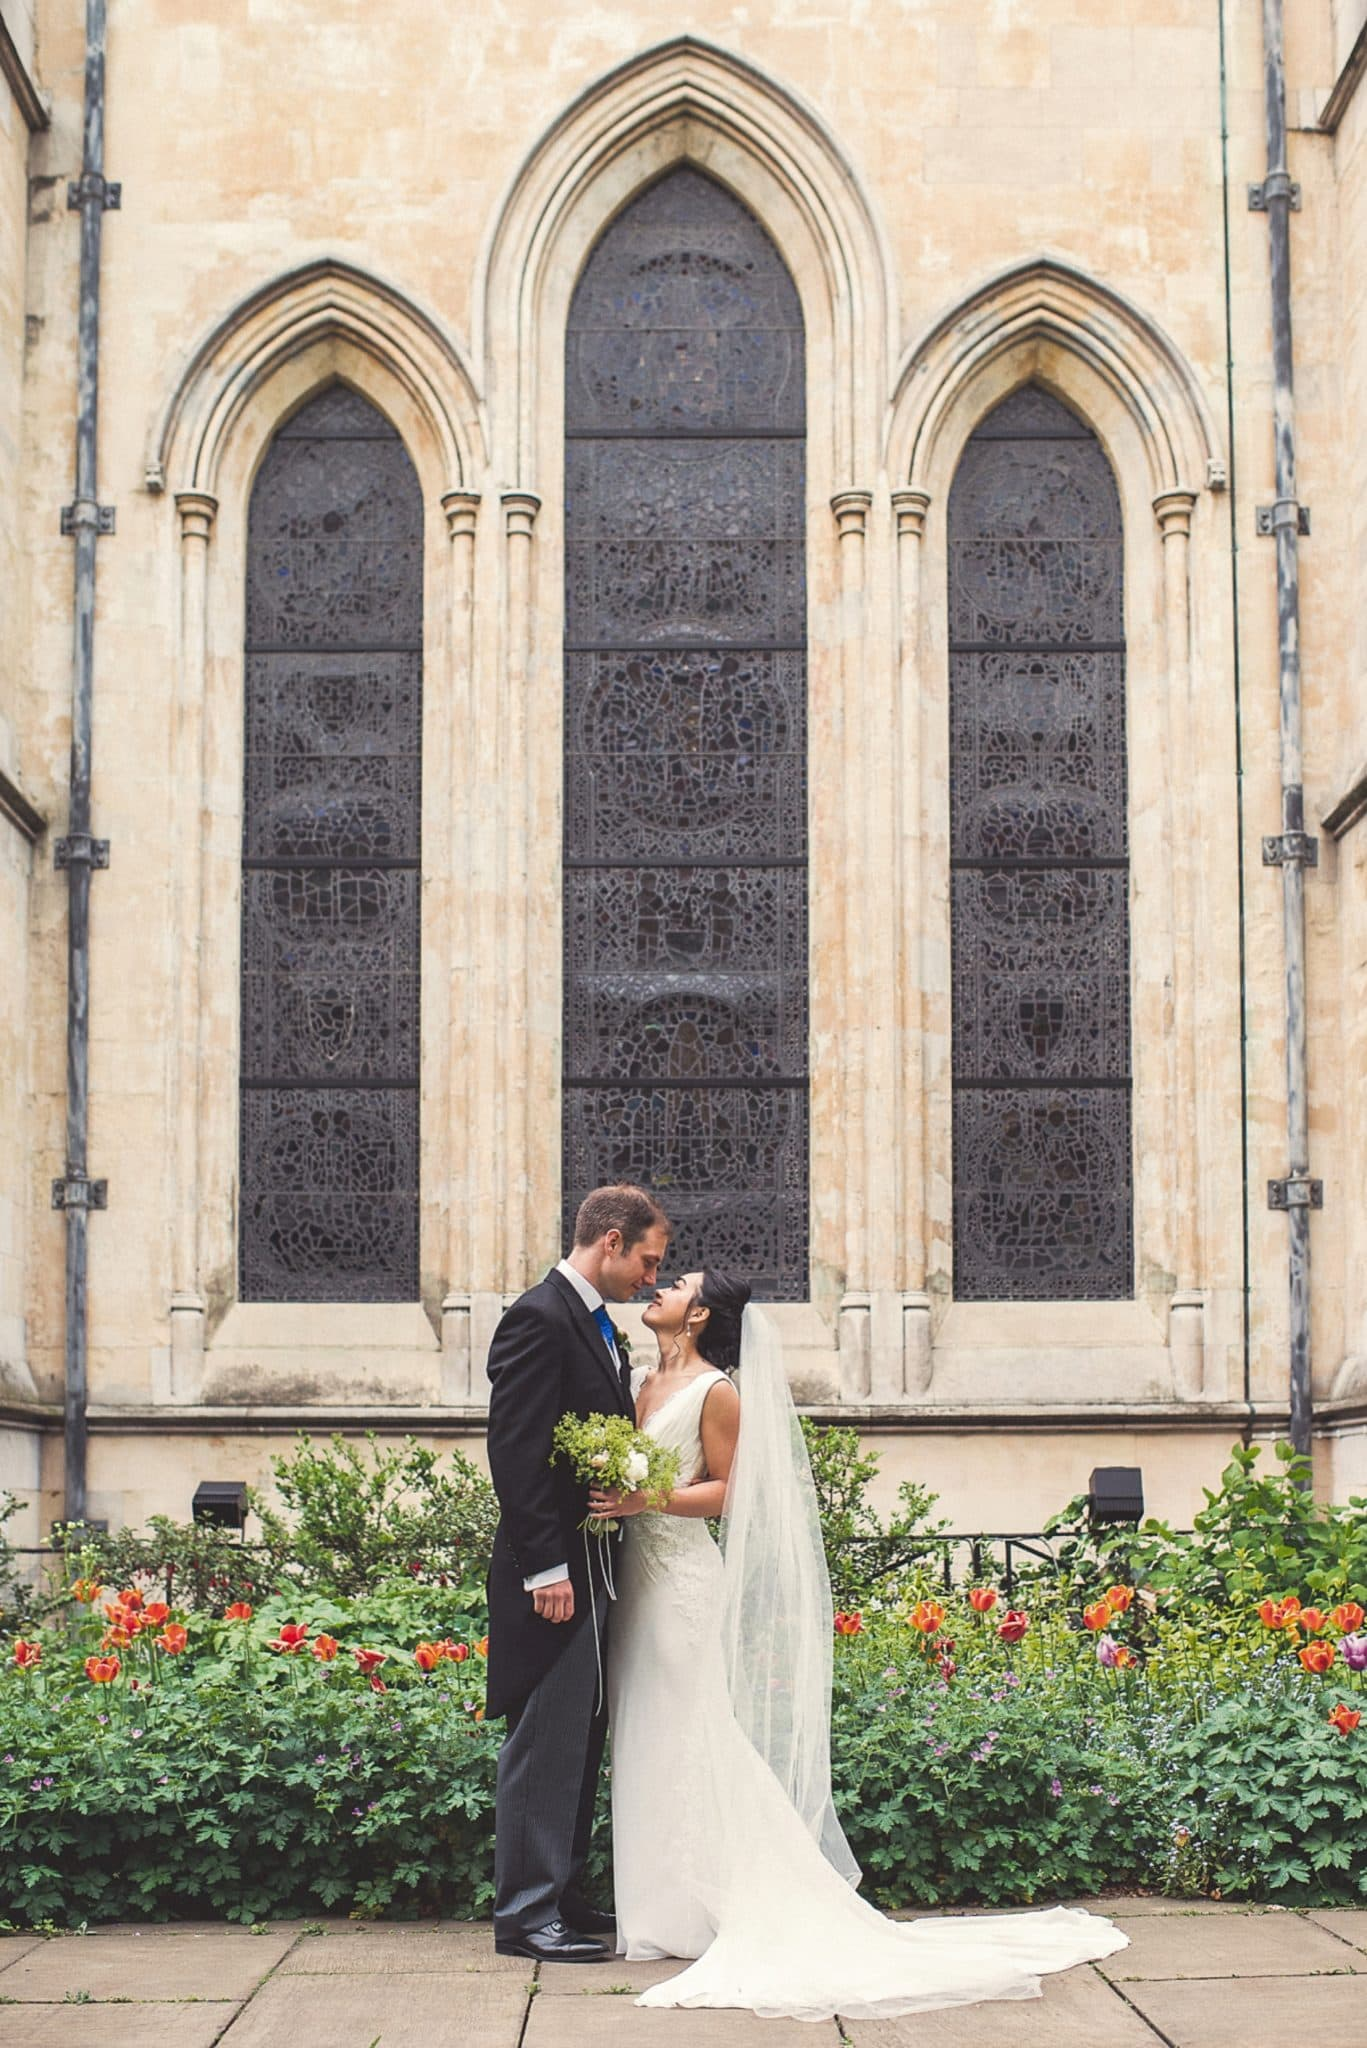 Bride and Groom stand in front of the stained glass windows of Temple Church in London